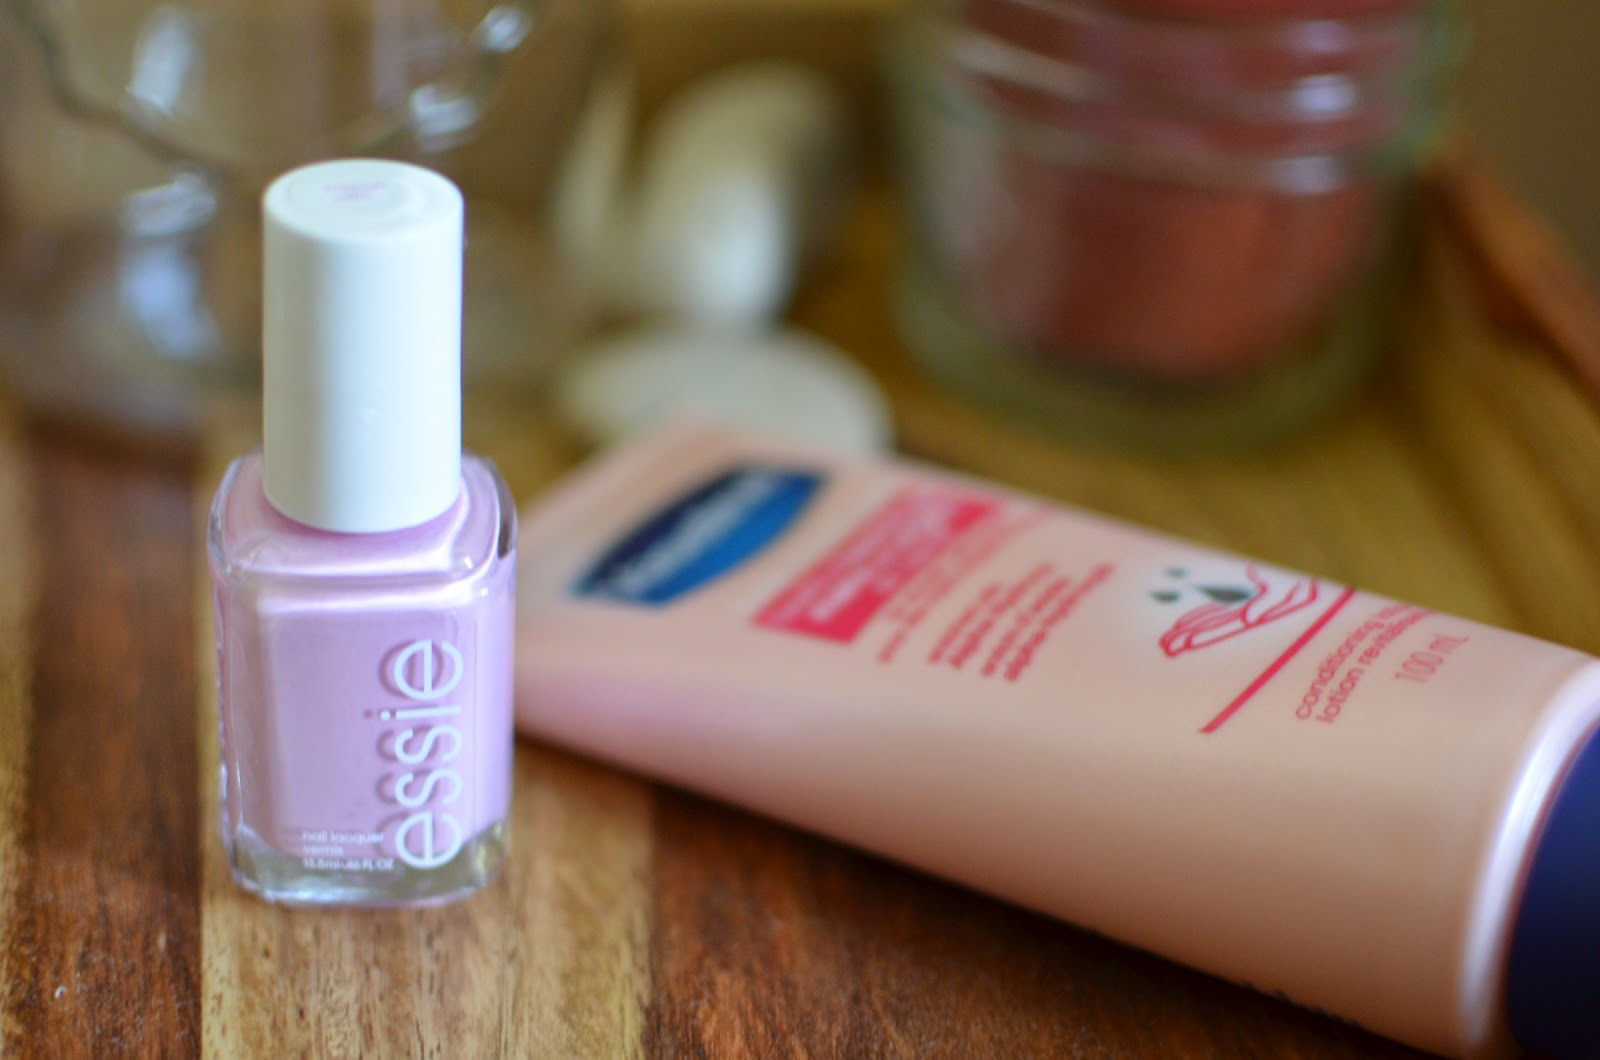 Essie's French Affair nail polish and my current tube of Vaseline hand cream